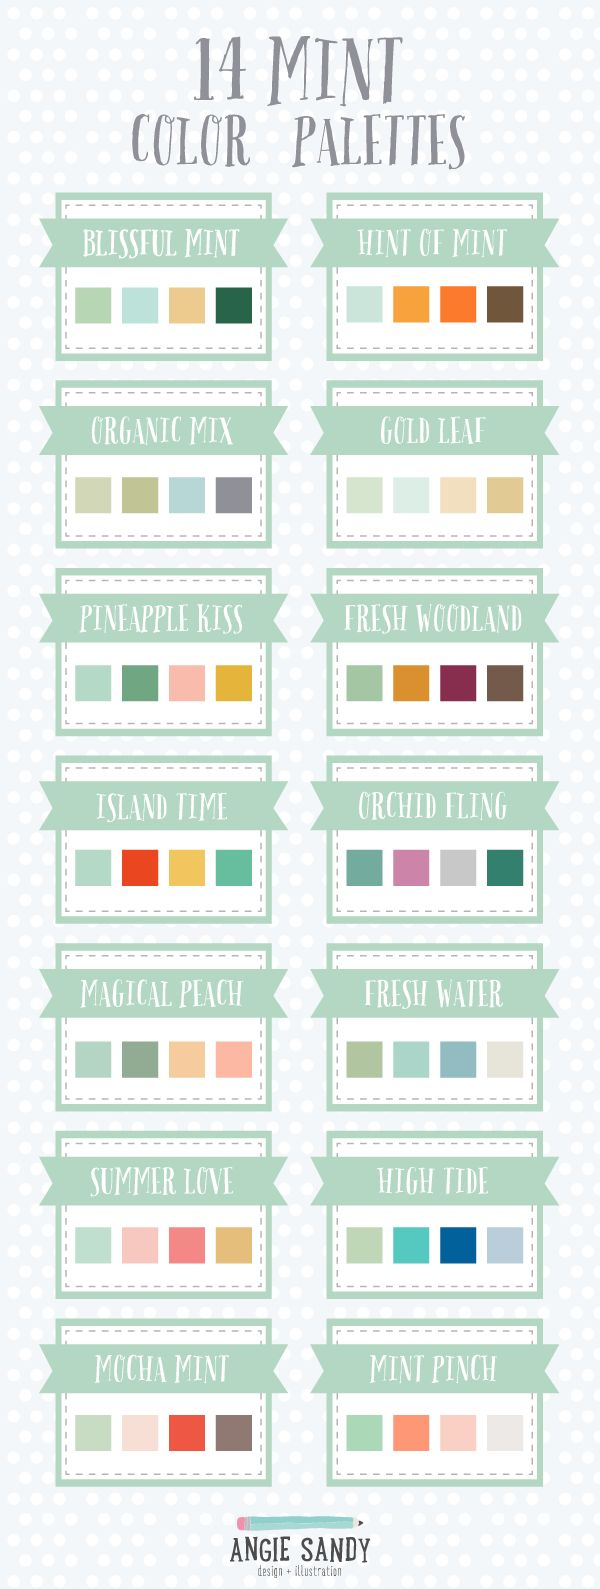 14 Mint Color Palettes - Color Palette - Paint Inspiration- Paint Colors- Paint Palette- Color- Design Inspiration